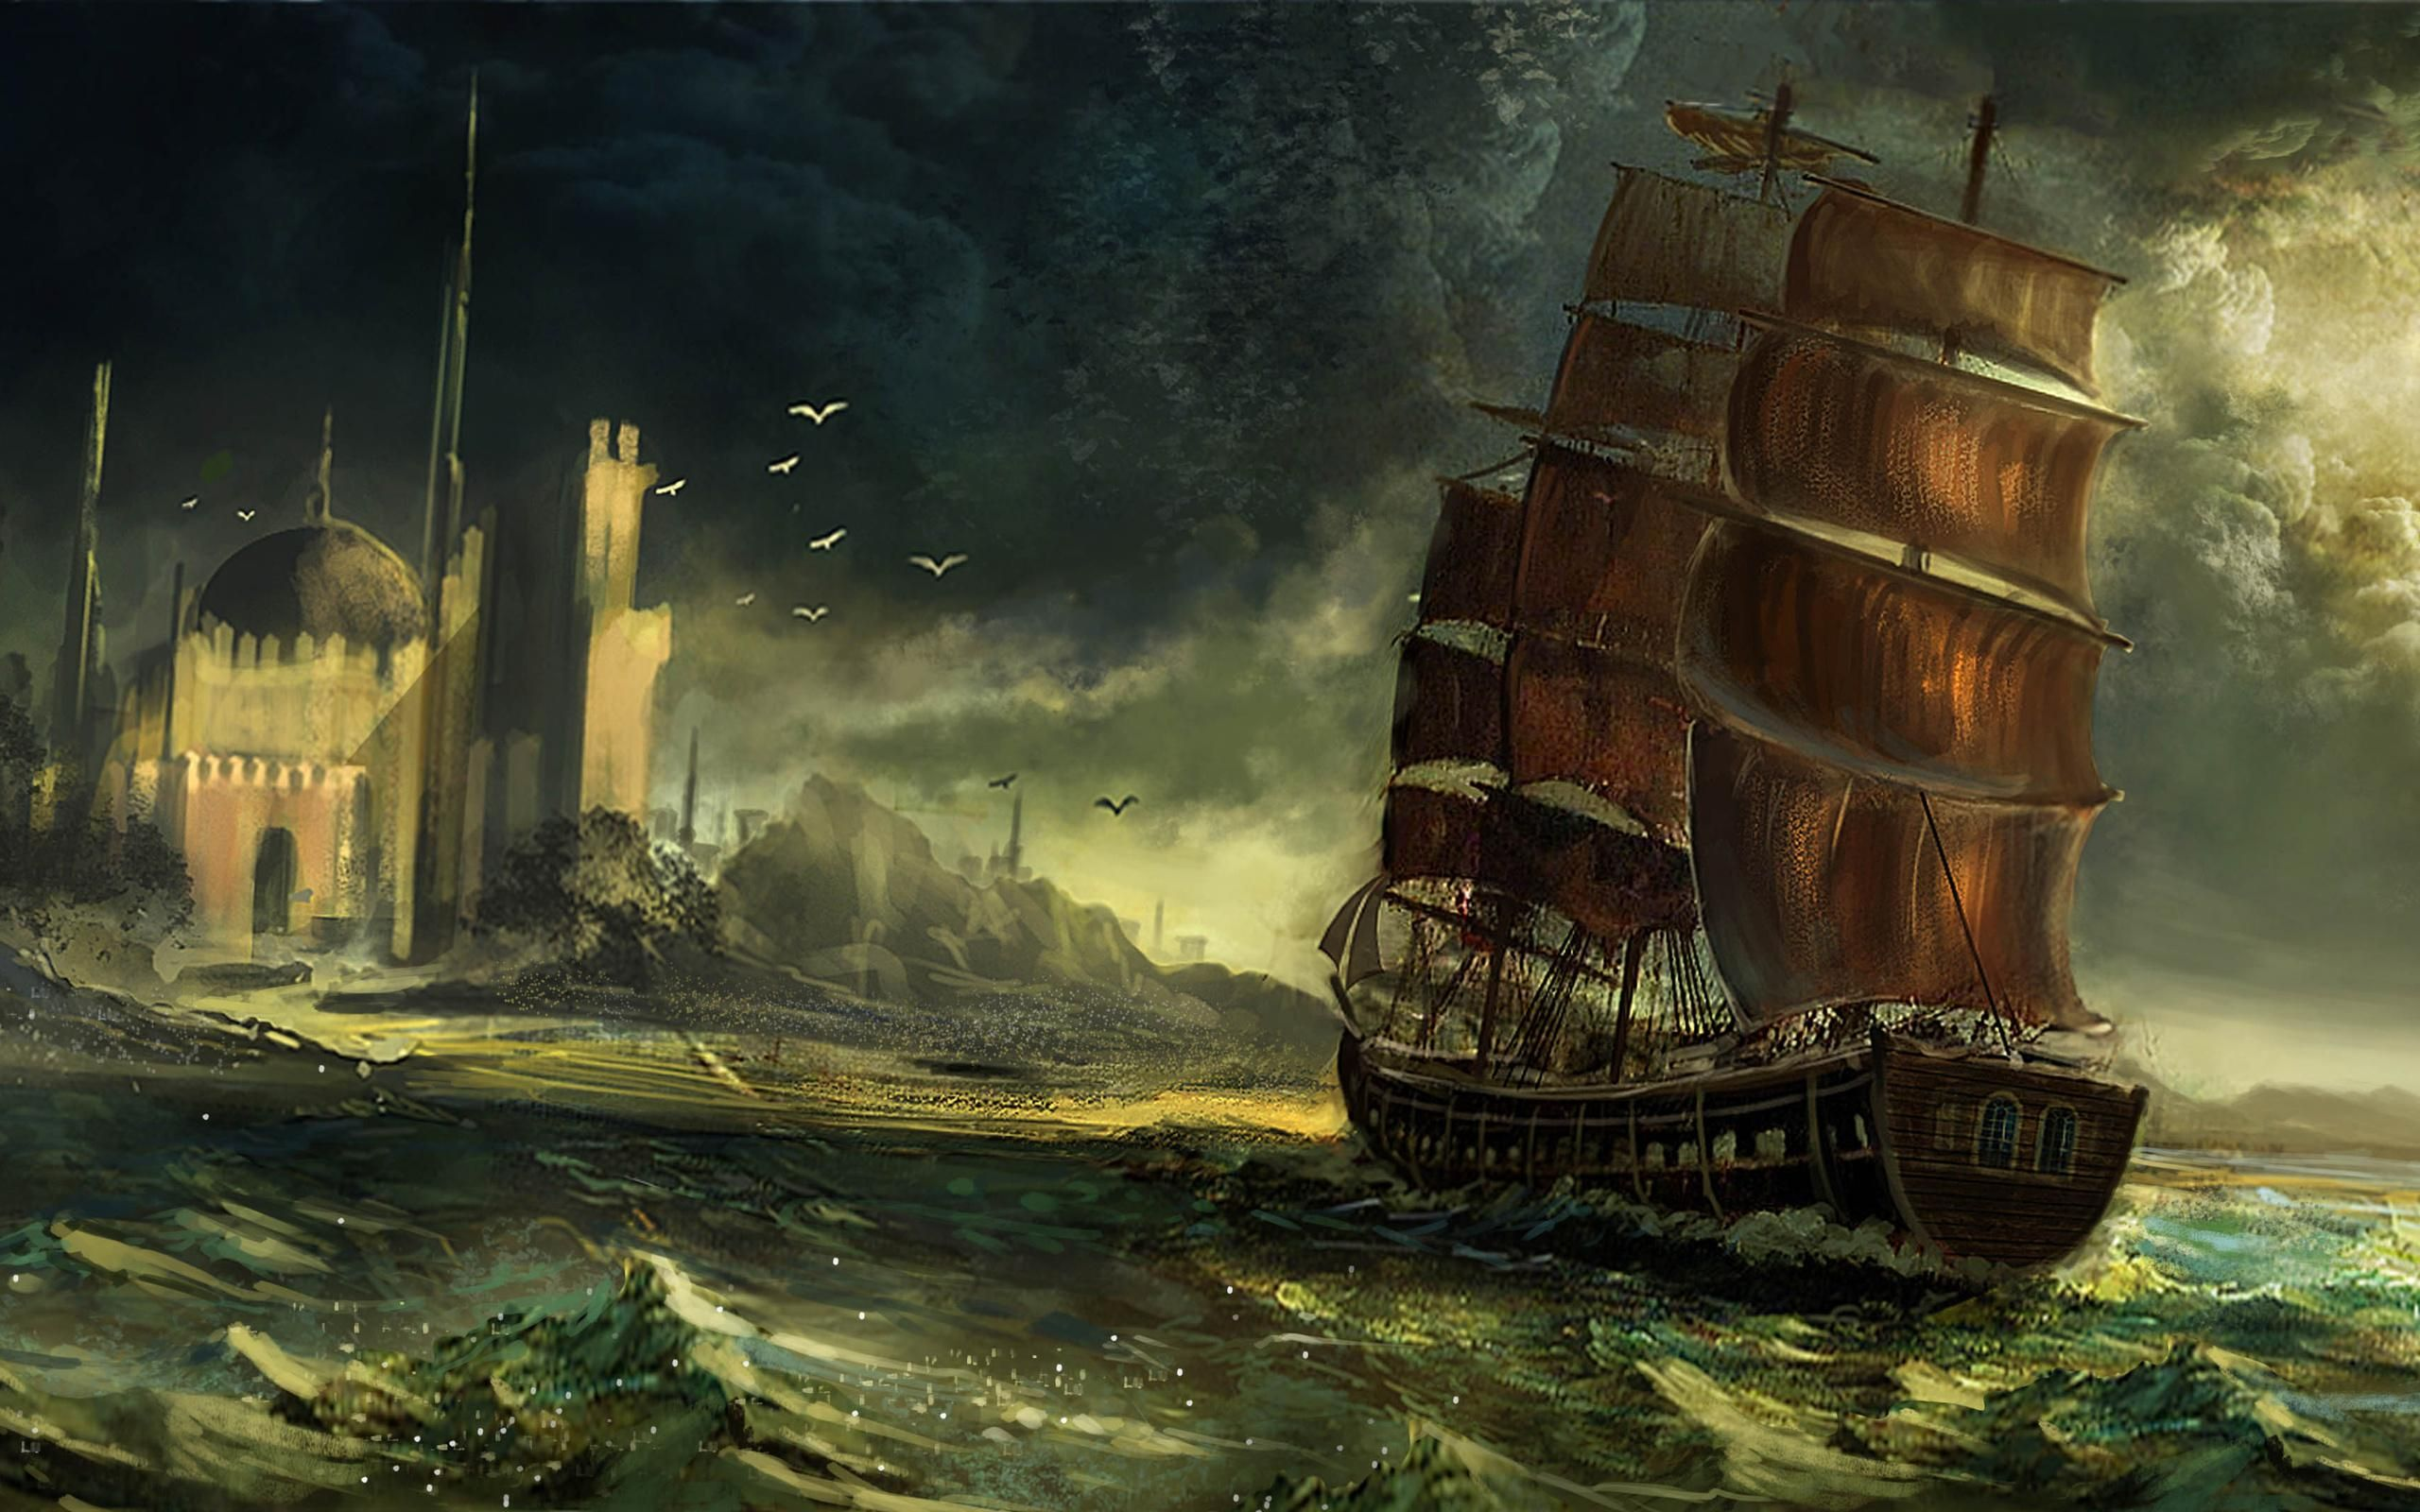 pirate ship k8ni 2560x1600 px 41563 kb other ghost